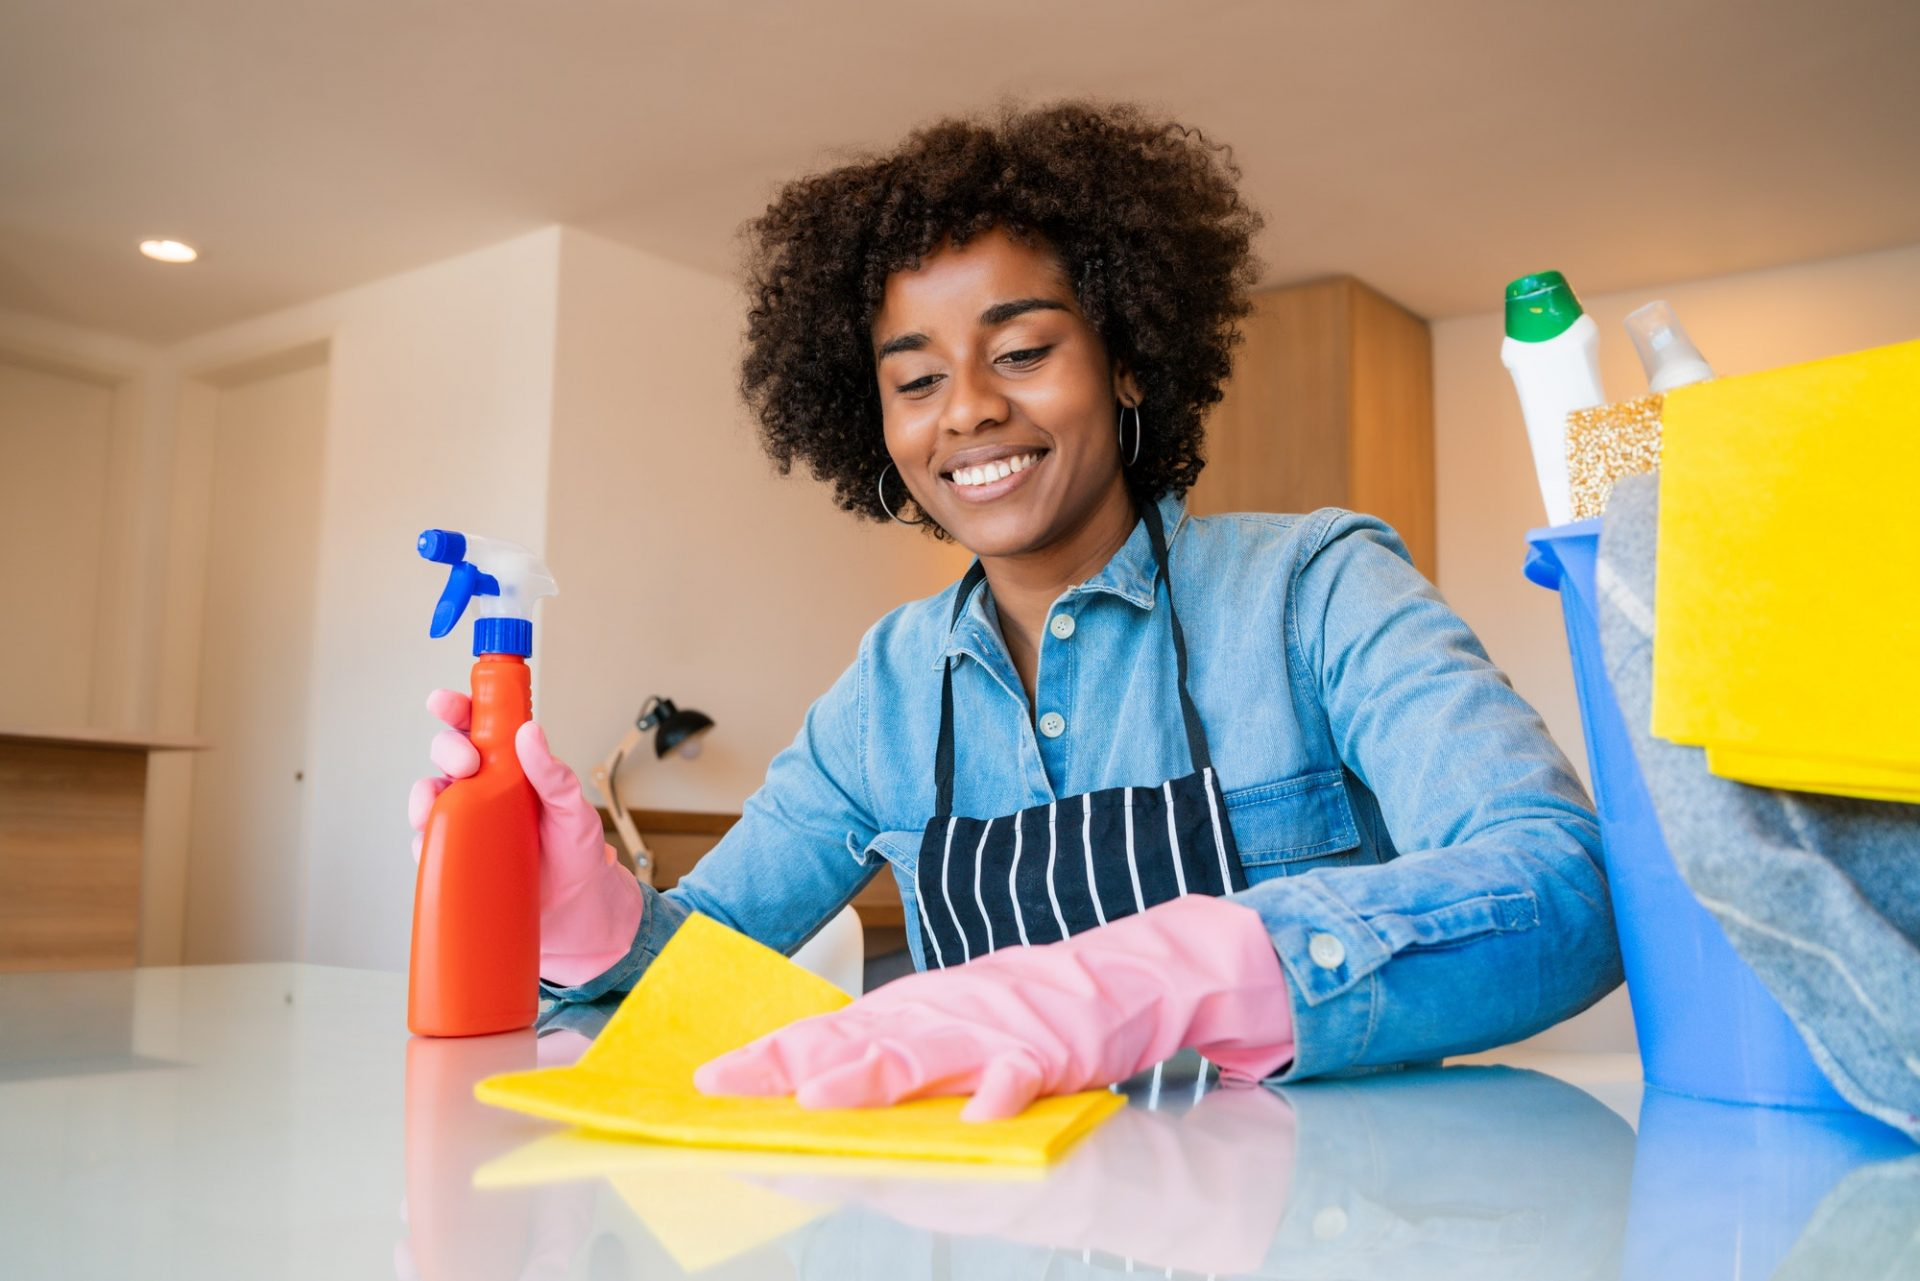 Afro woman cleaning new home.